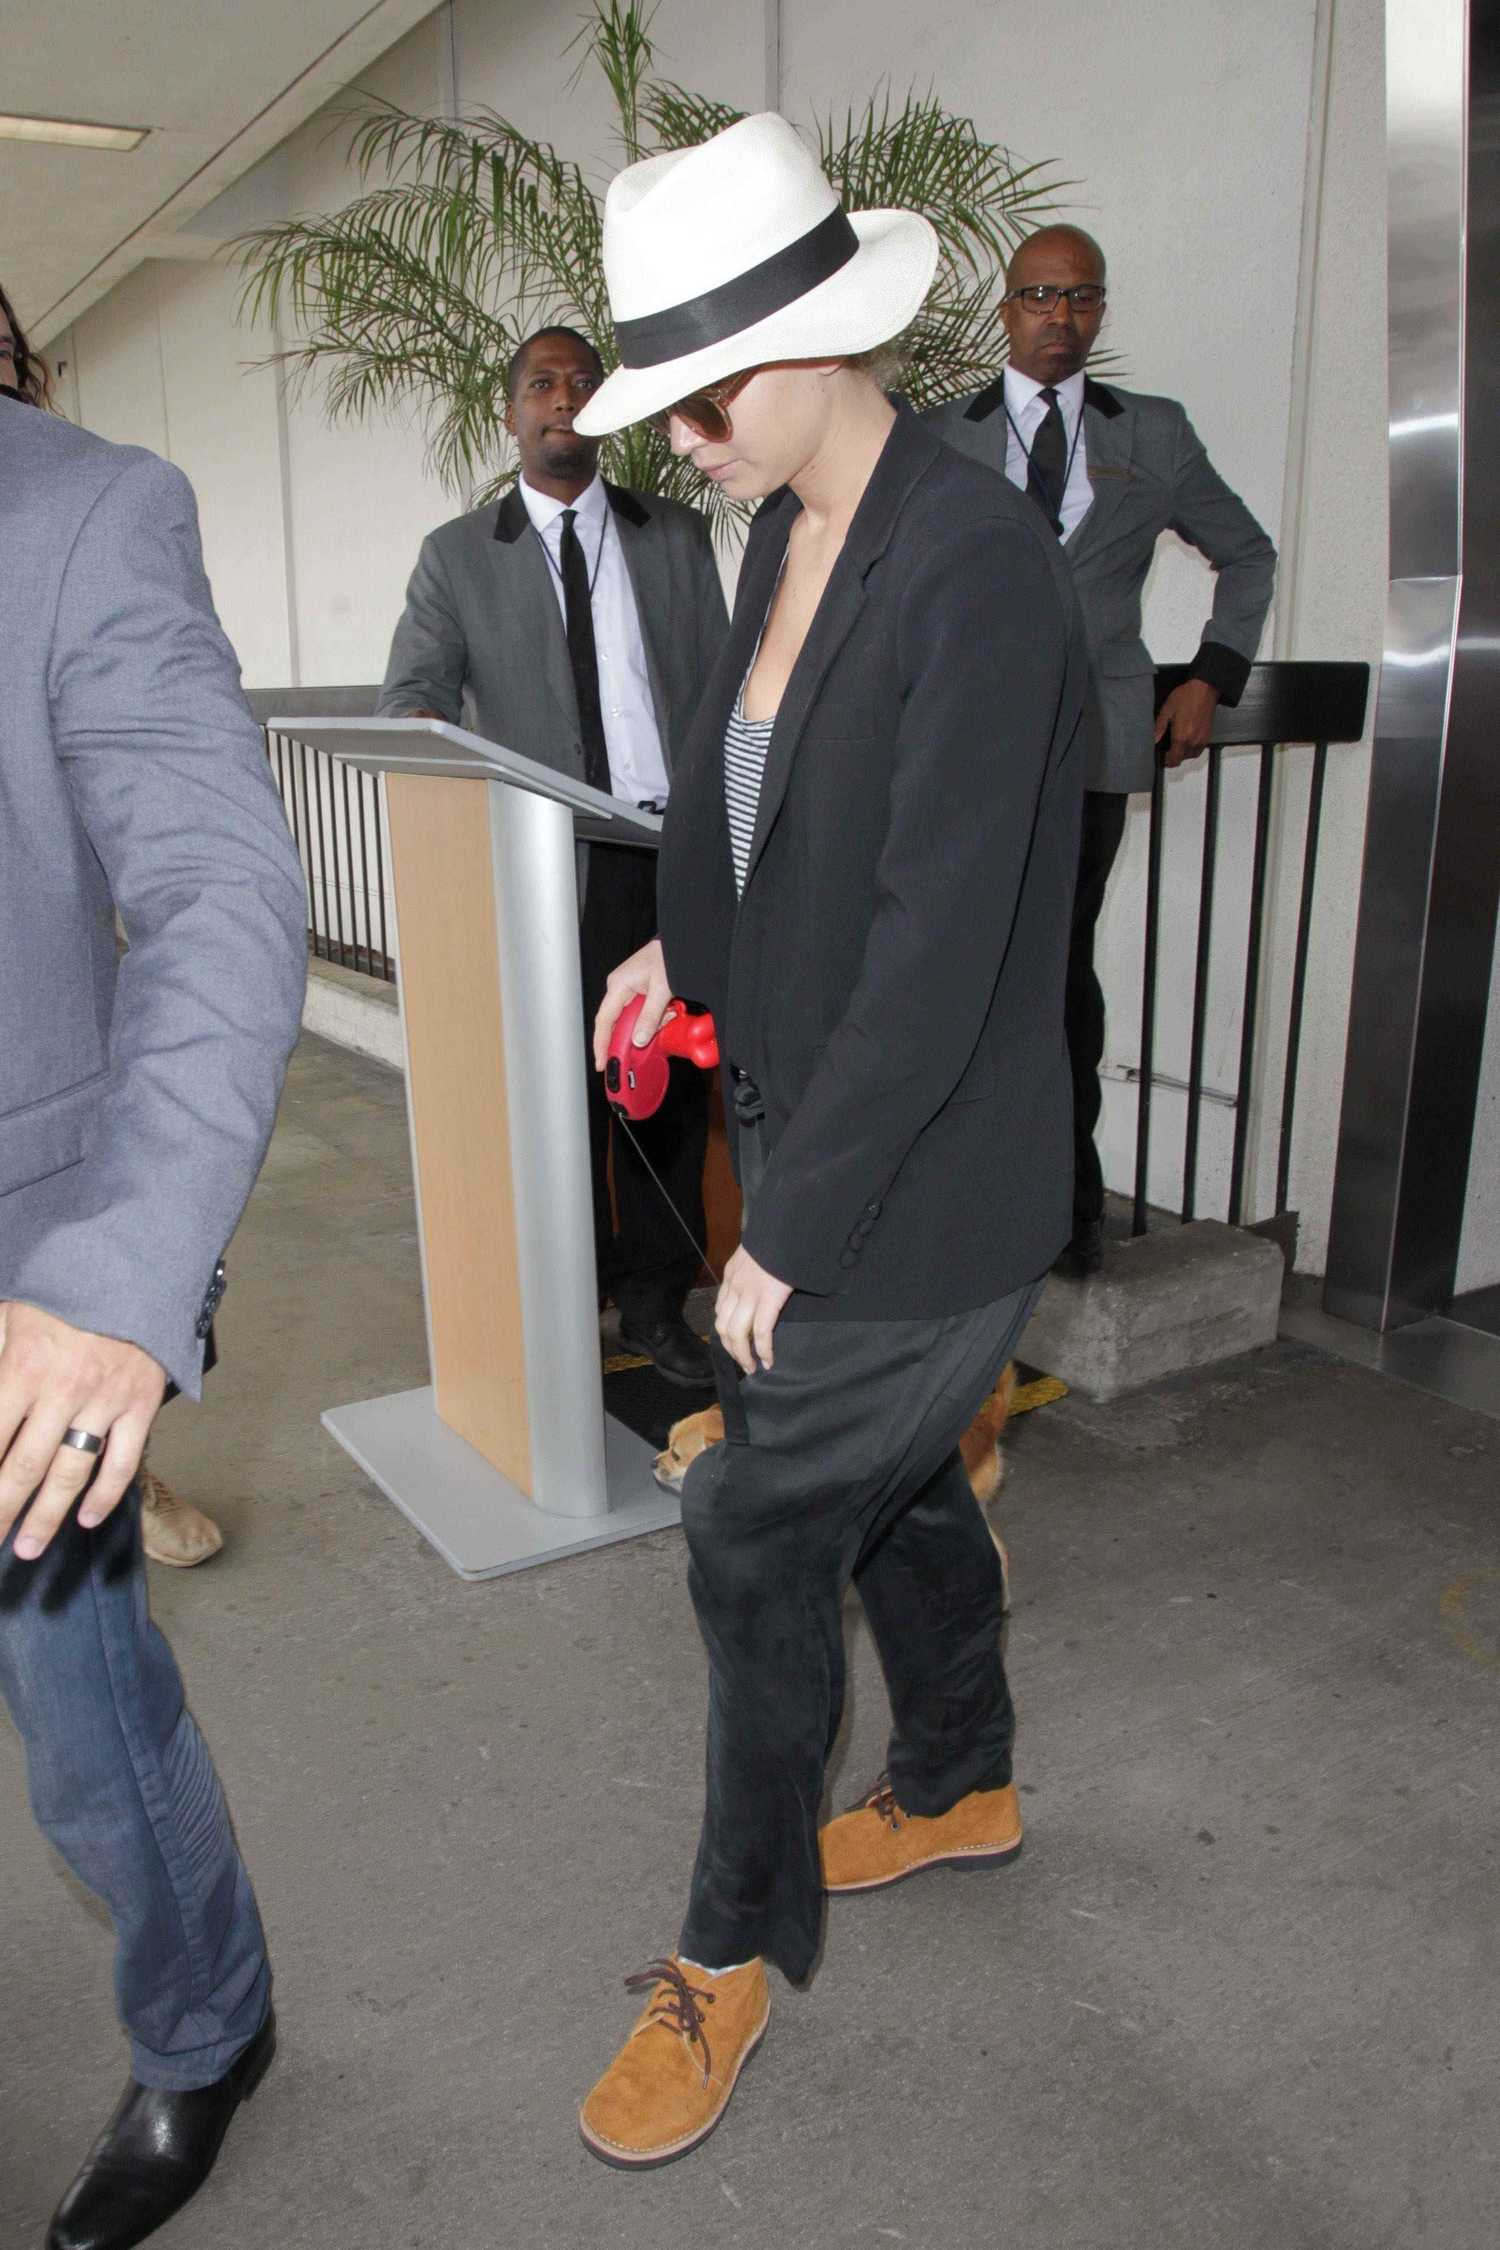 http://jenniferlawrencedaily.com/gallery/albums/userpics/10001/Walking_Her_Dog_at_JFK_Airport_-_June_22-07.jpg